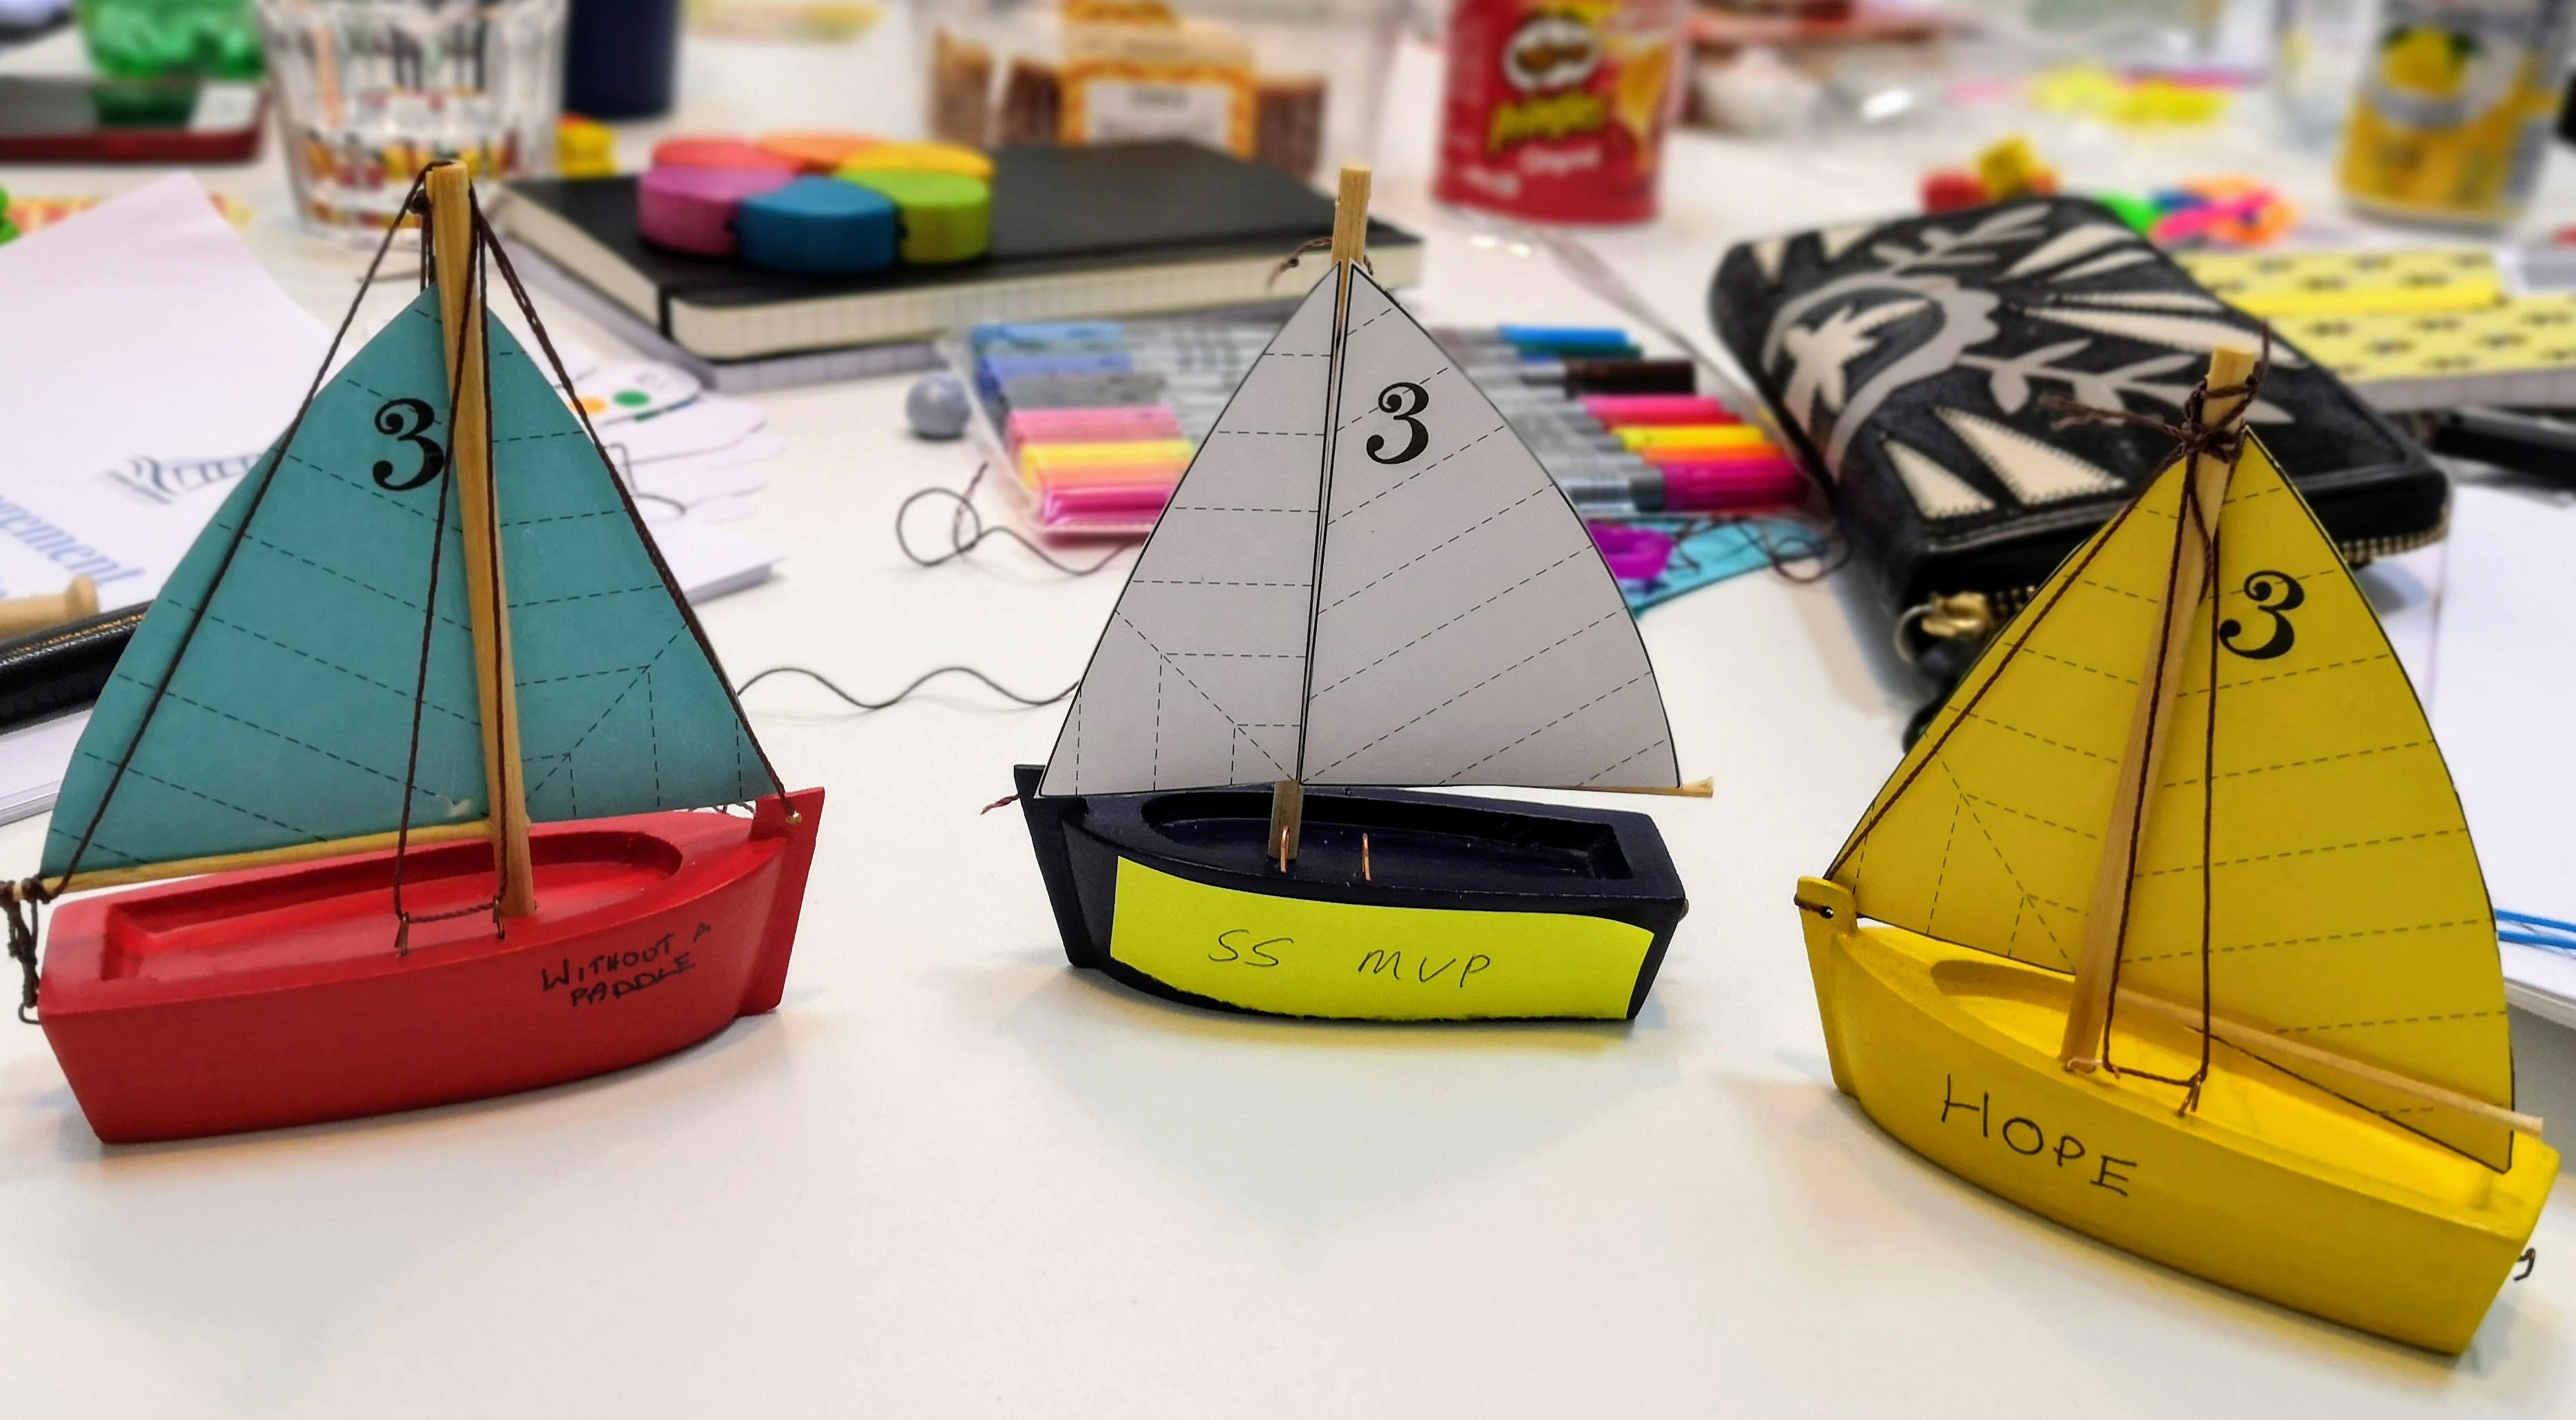 Captain of your own boat activity from Nikie Forster @ Curious Lighthouse Learning Consultancy Ltd.